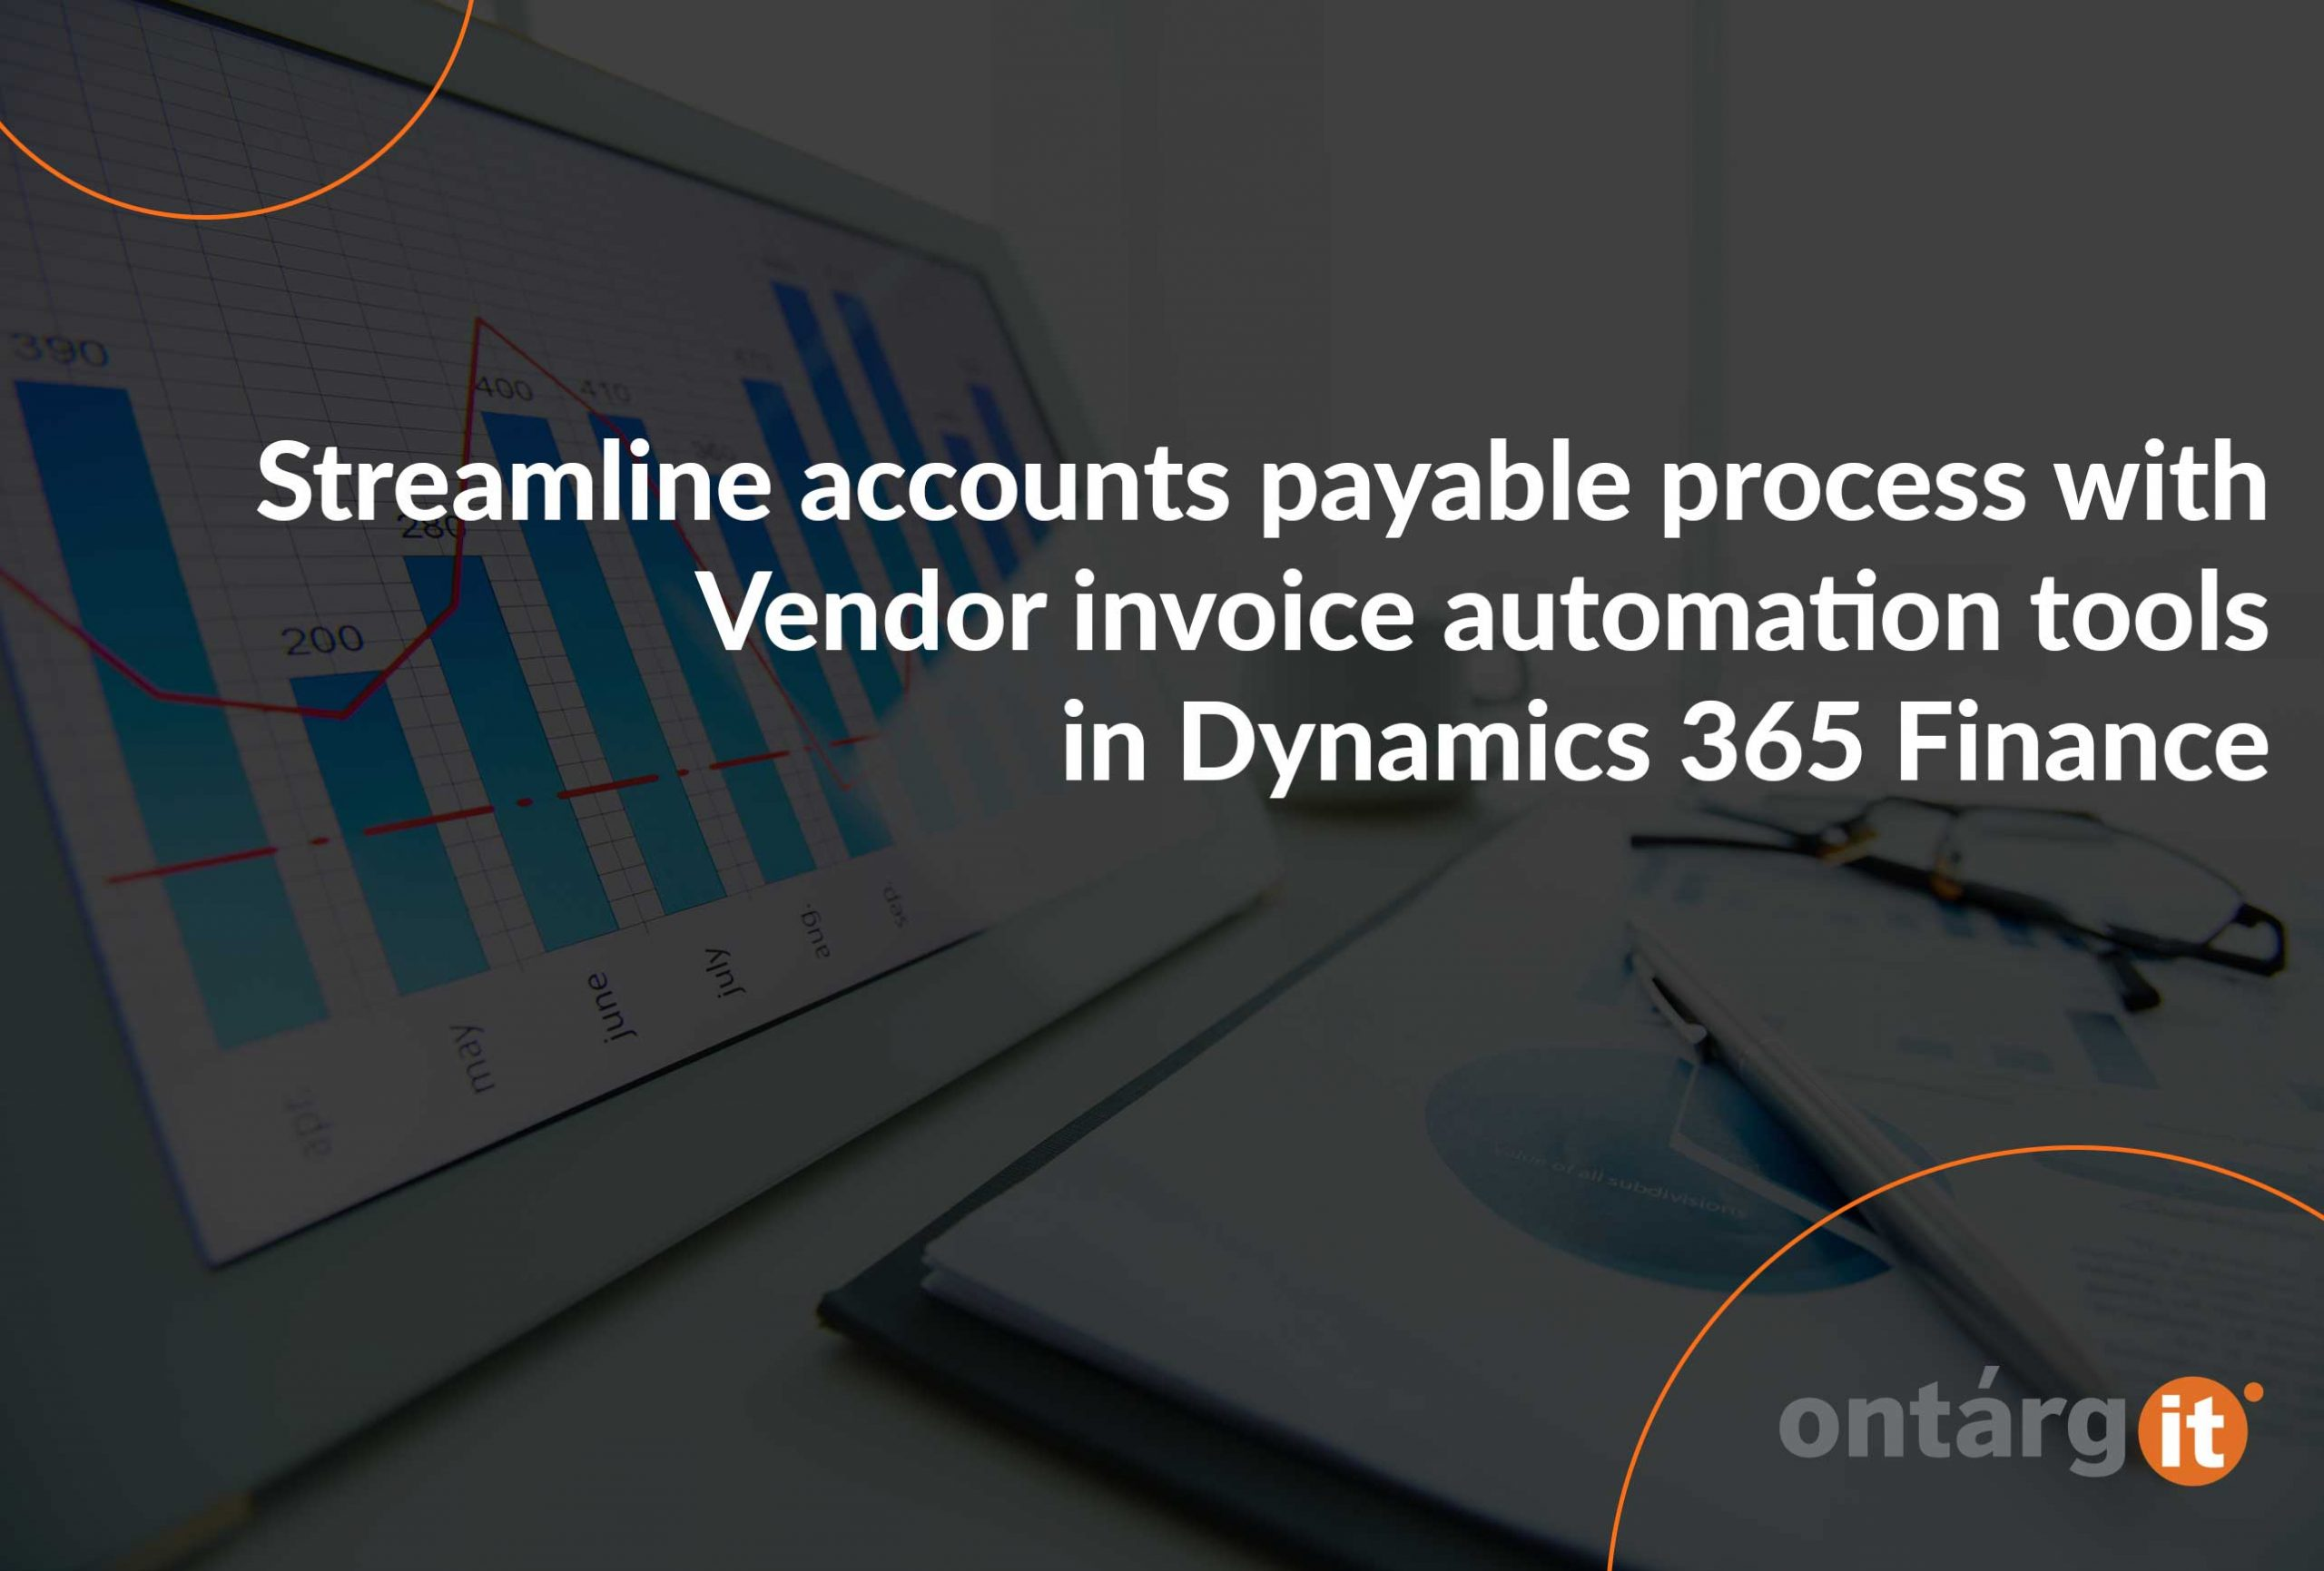 Streamline-accounts-payable-process-with-Vendor-invoice-automation-tools-in-D365-Finance